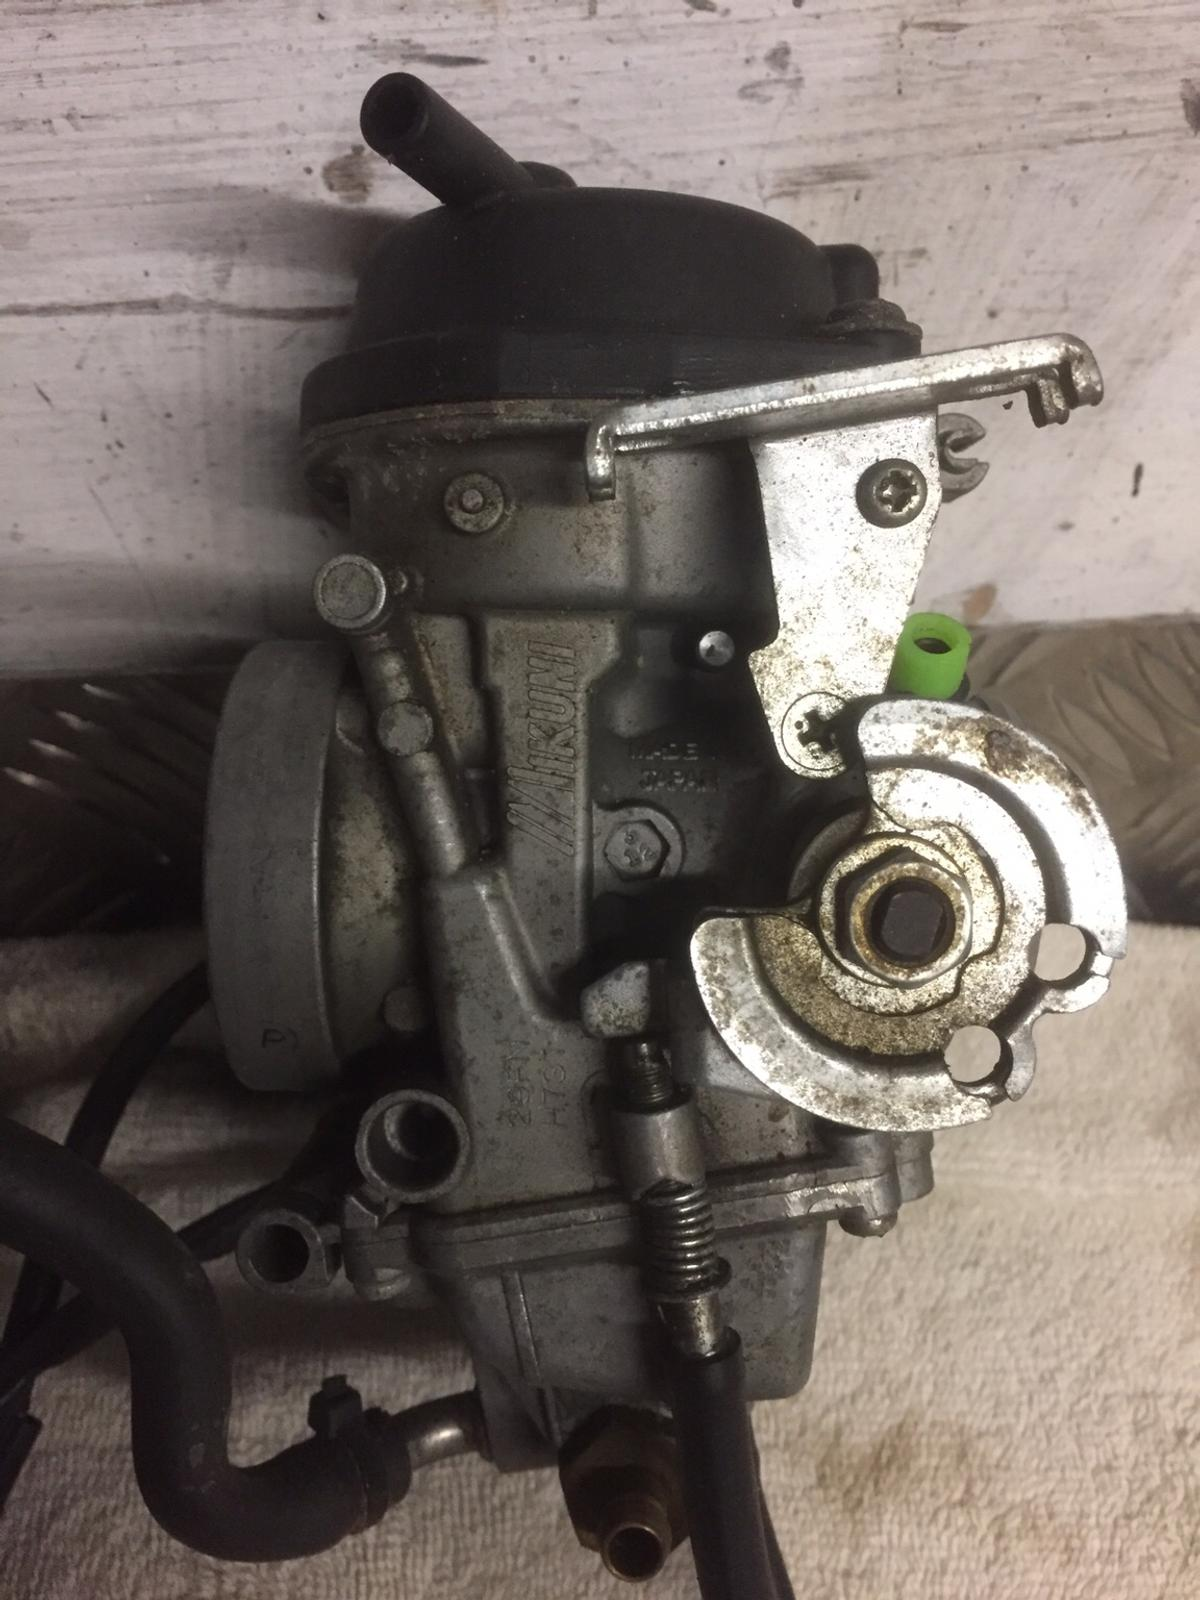 Suzuki drz 400 carb from a 2008 model bike all in working condition had rebuild kit not to long ago , selling as no longer have use for it , some other drz 400 parts there message me with what your looking for